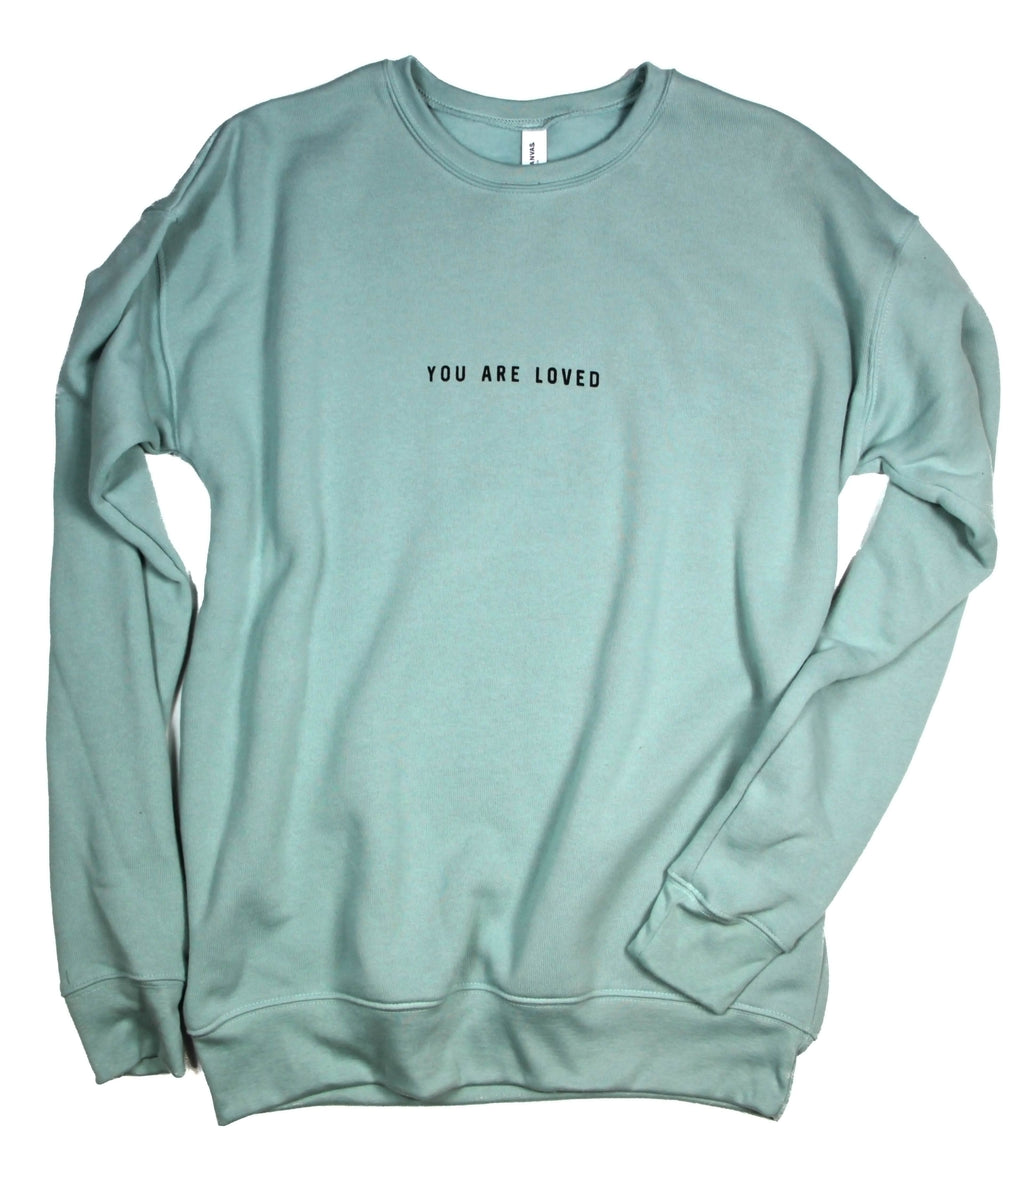 YOU ARE LOVED DUSTY BLUE CREWNECK SWEATSHIRT